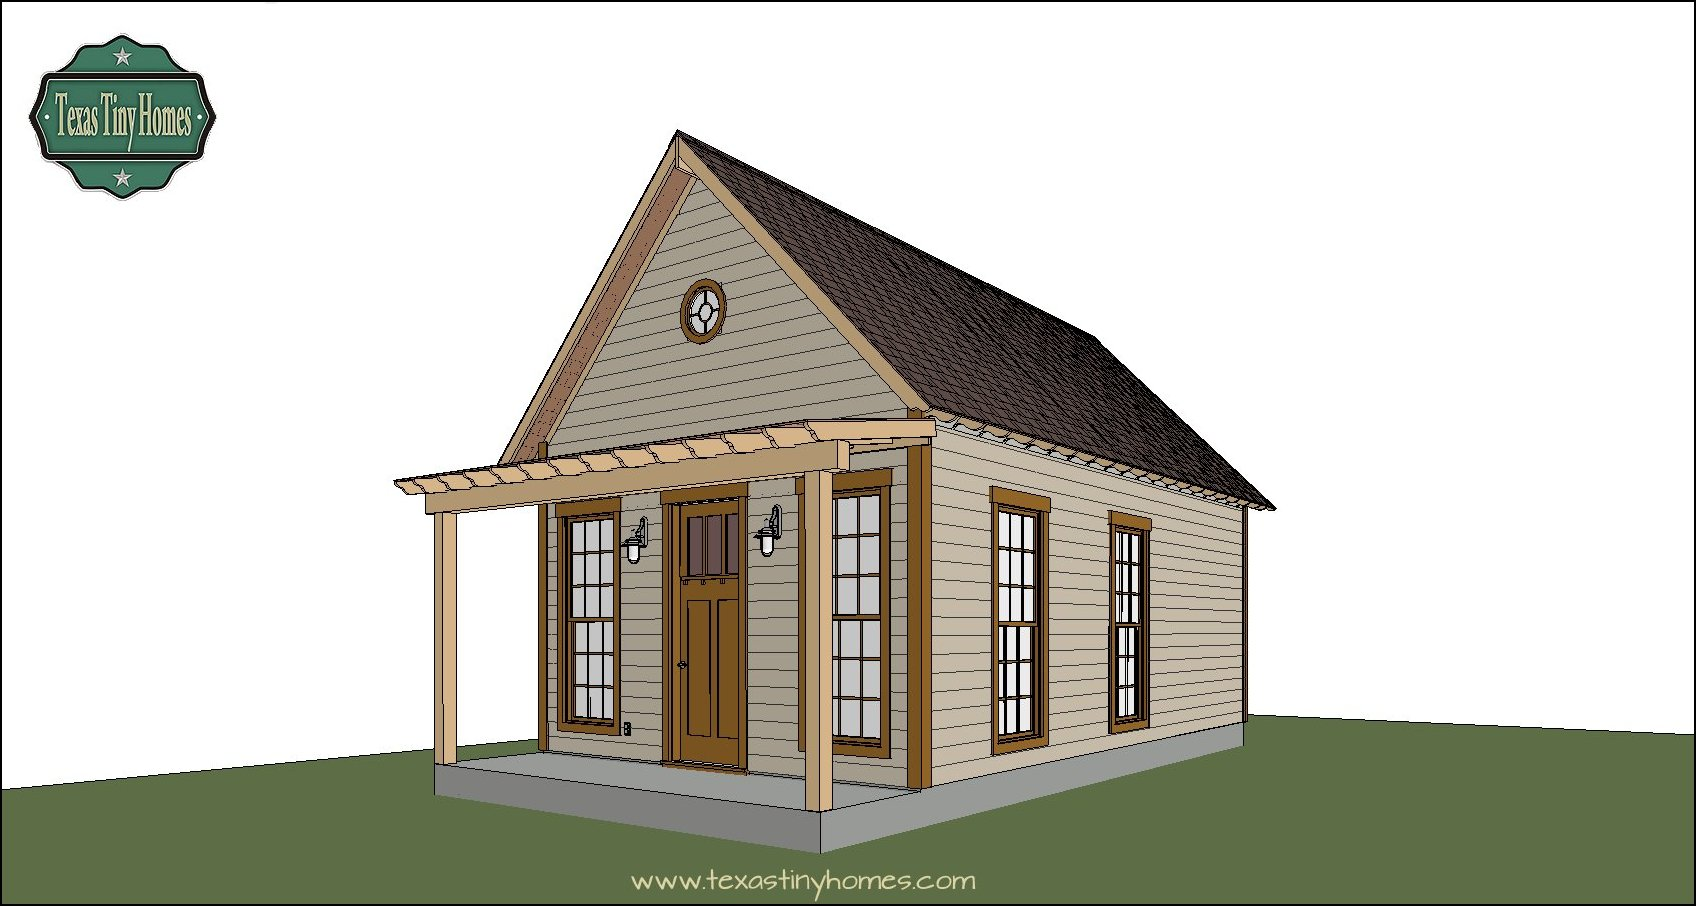 texas tiny homes plan 572 small homes little house texas tiny house plans small home